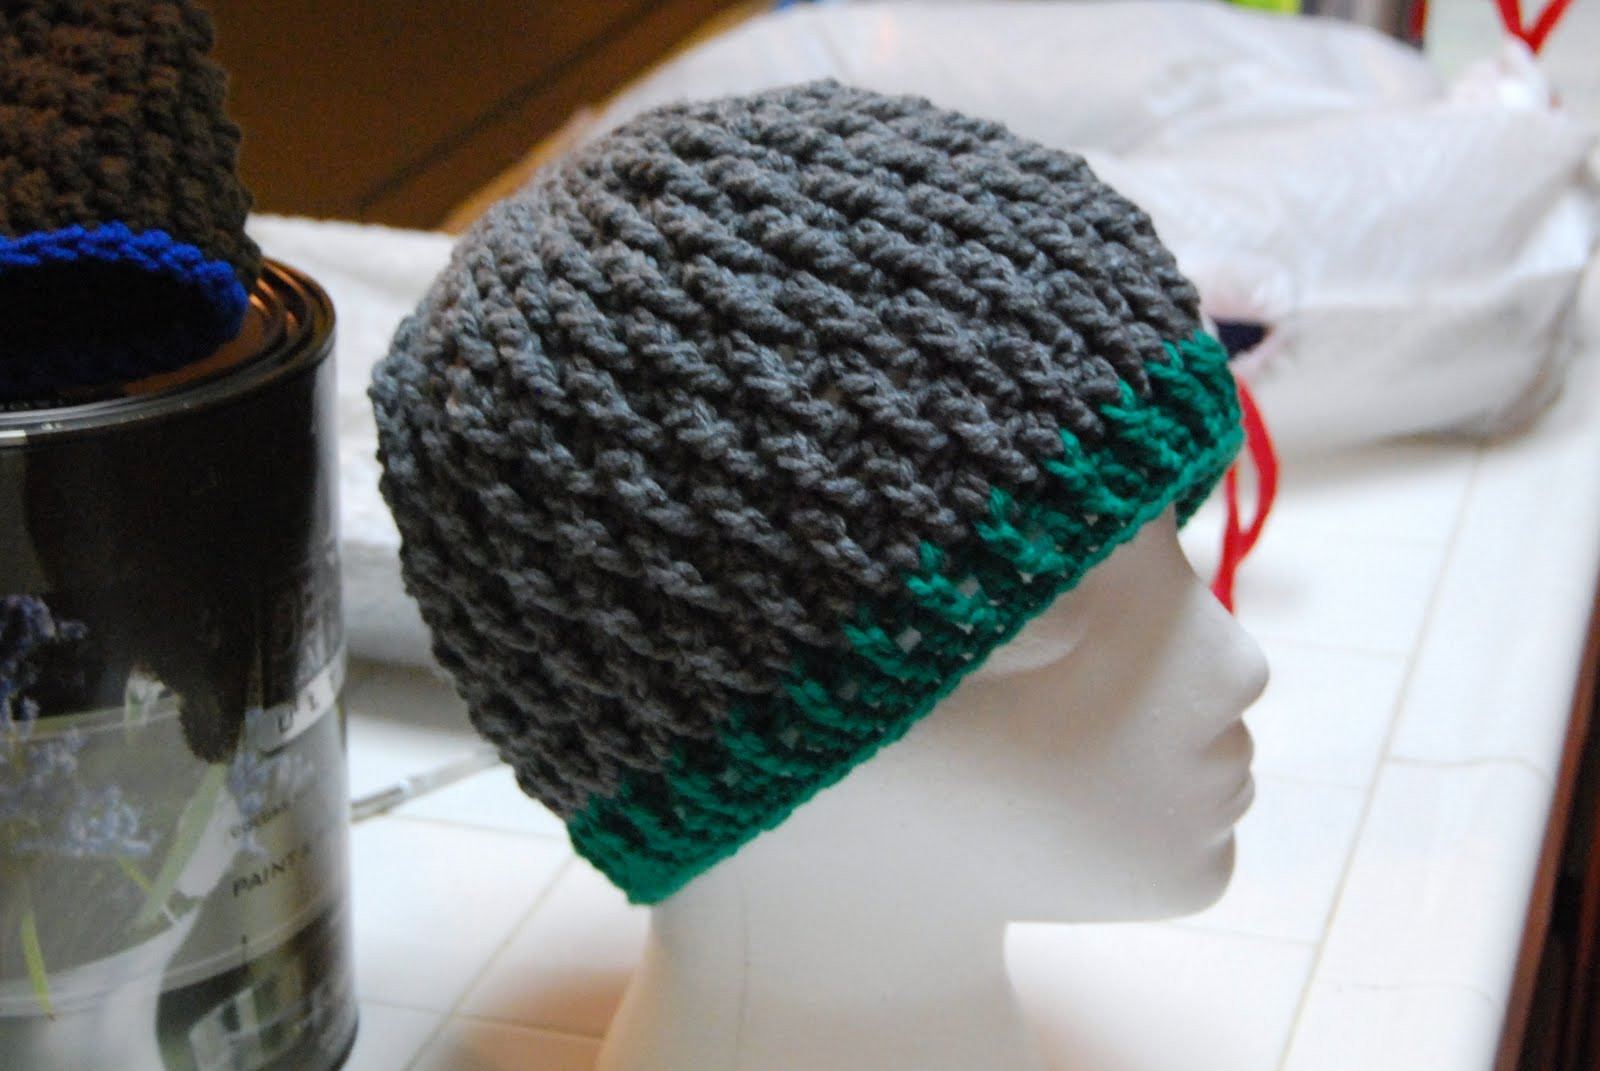 Beanie Hat Pattern Inspirational the Laughing Willow Deeply Textured Hat Free Pattern and Of Amazing 45 Ideas Beanie Hat Pattern